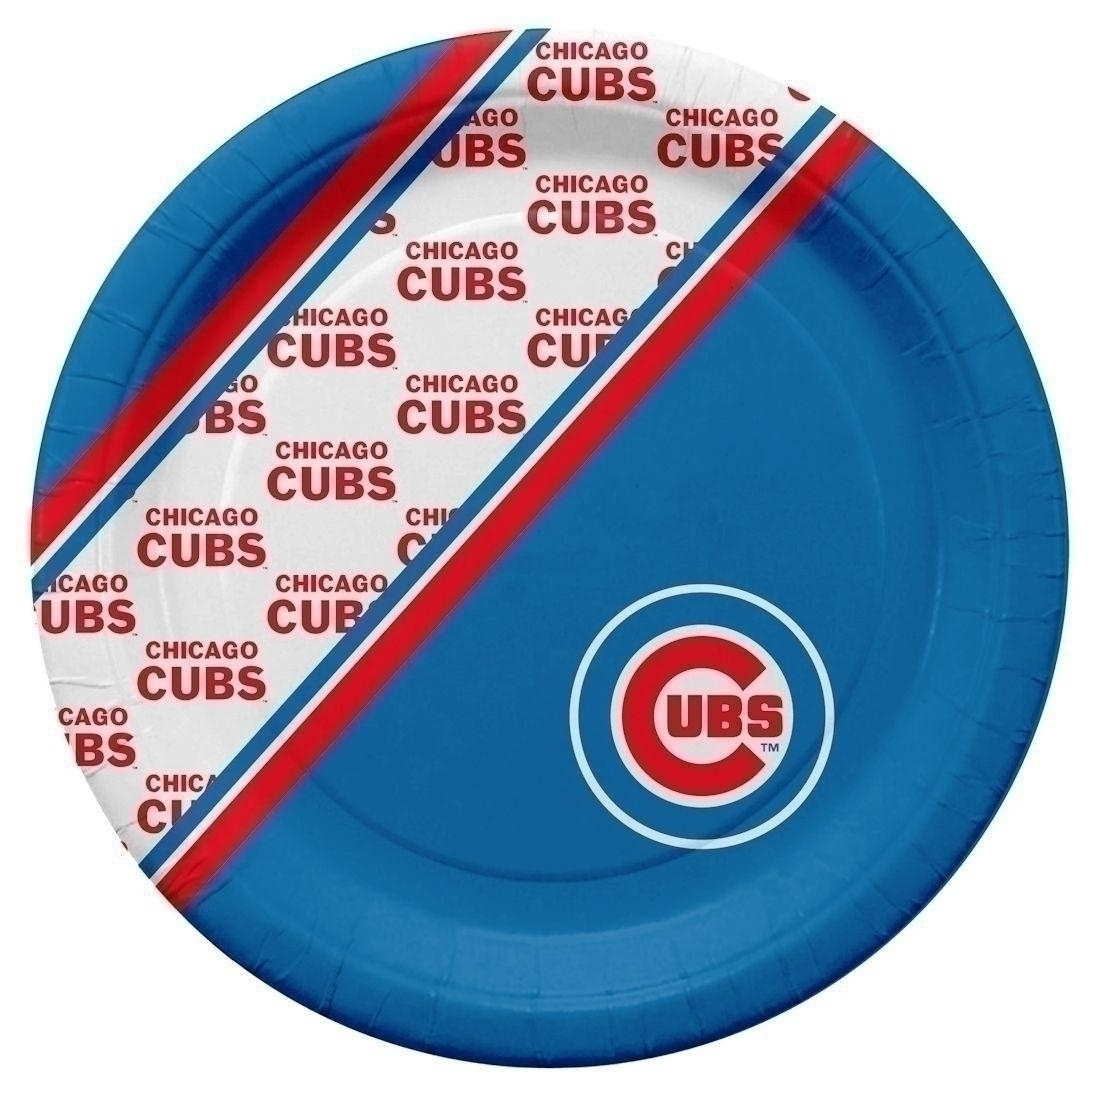 Mlb Baseball Chicago Cubs License Plates Frames - 9413103961 - Chicago Cubs Disposable Paper Plates 9413103961